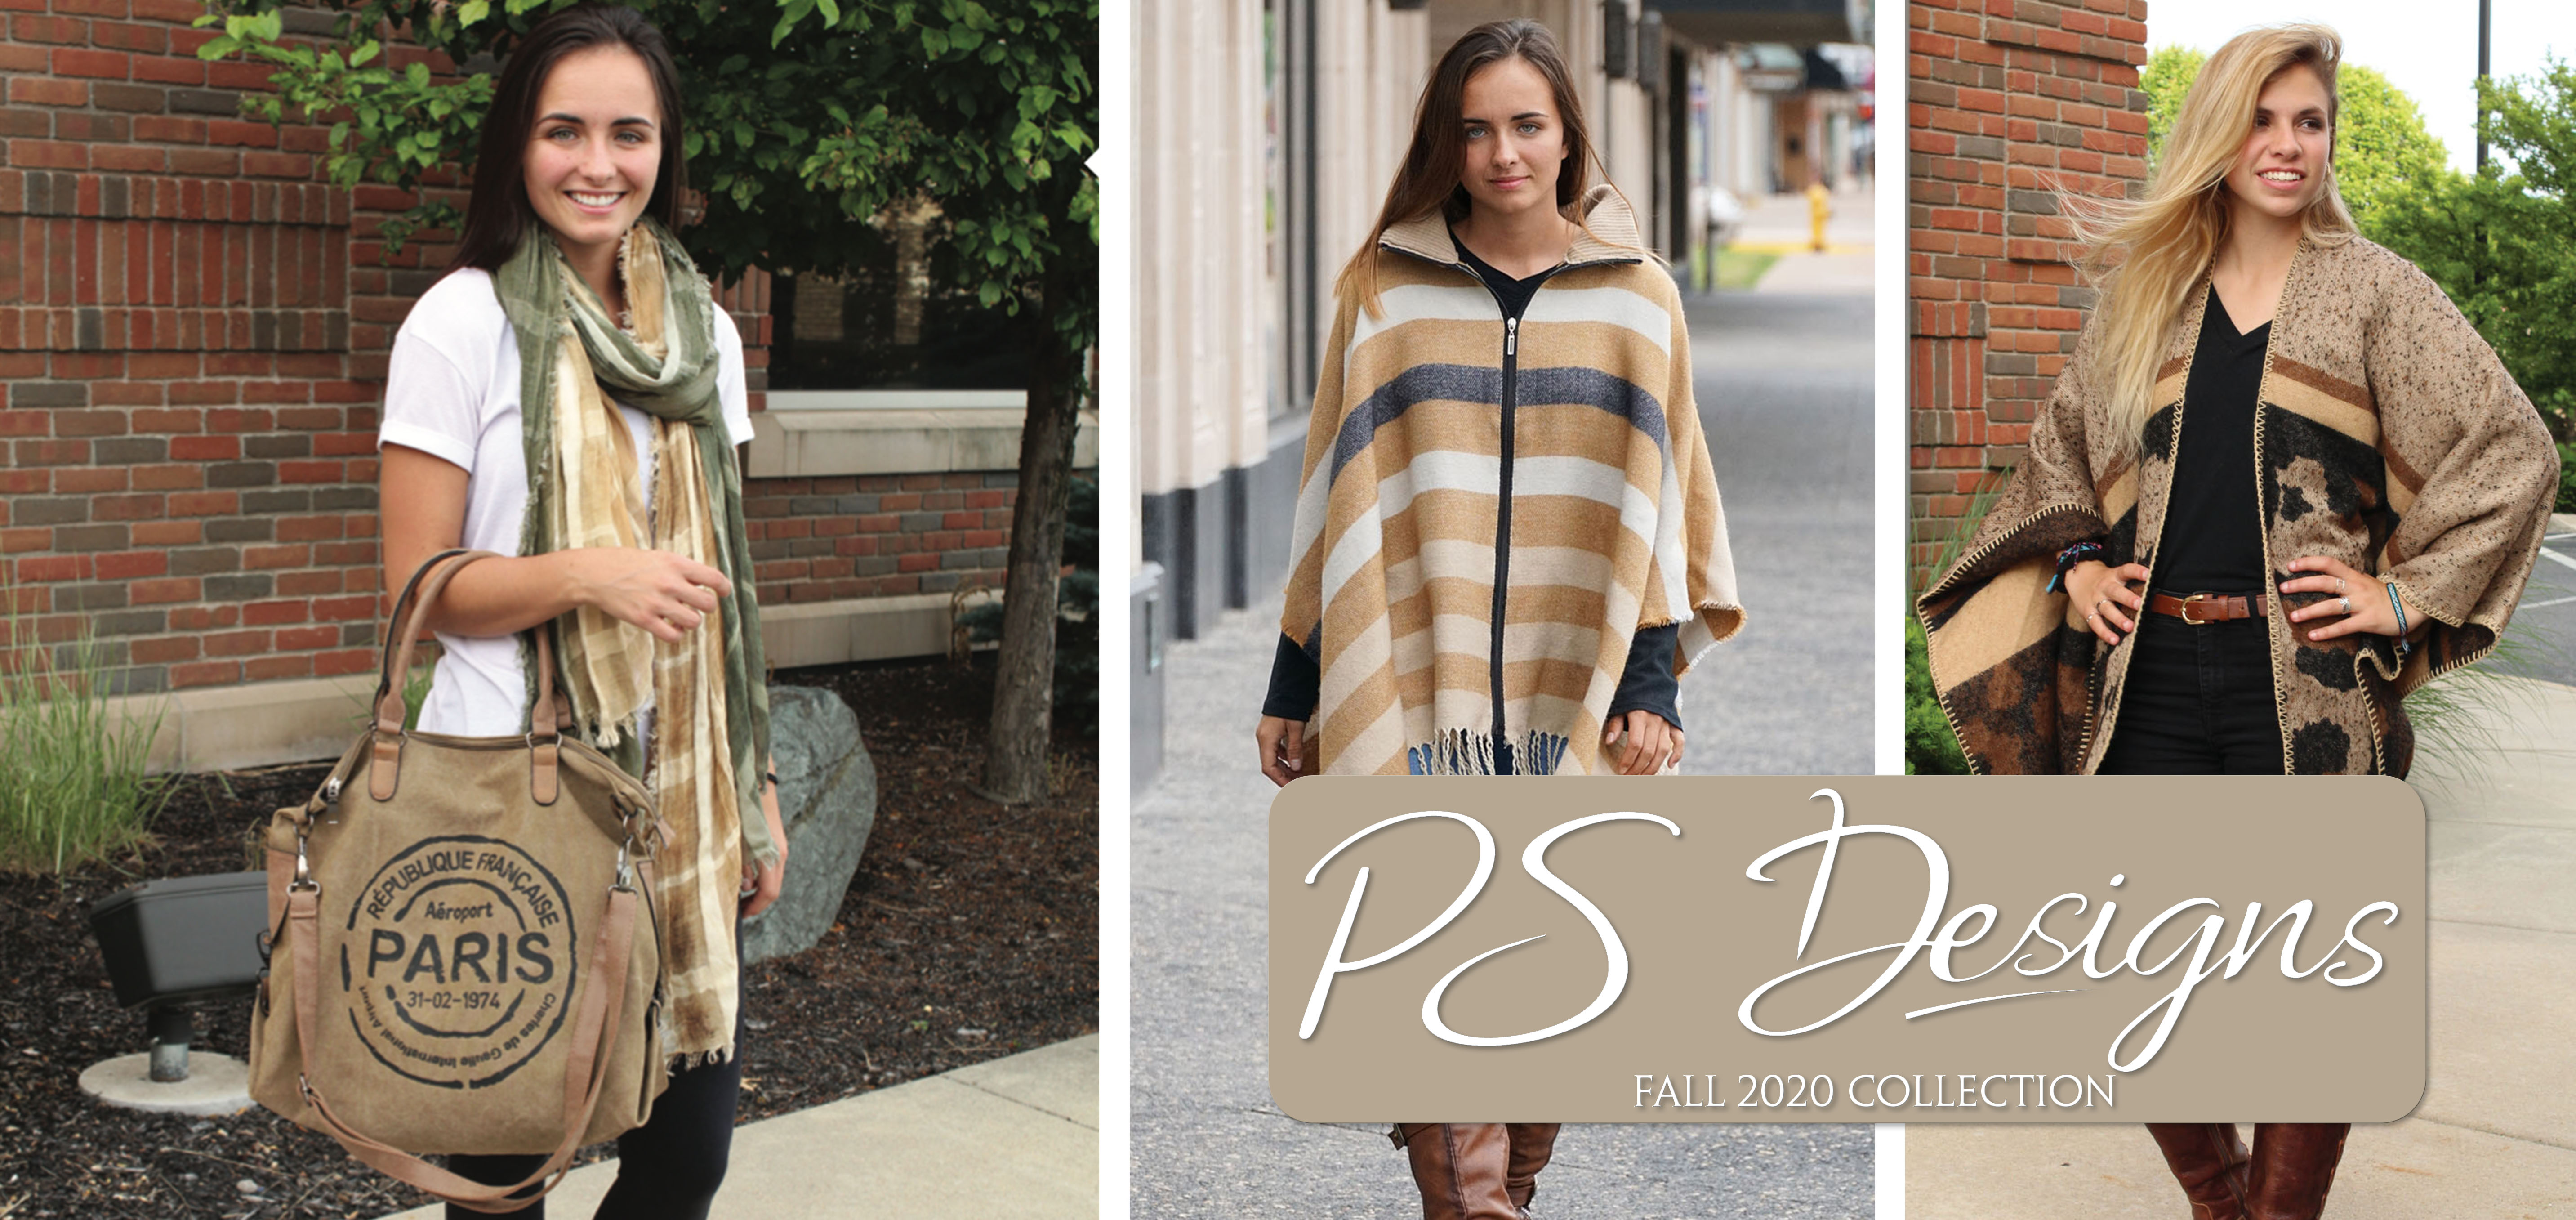 PS Designs Fall Collection Image